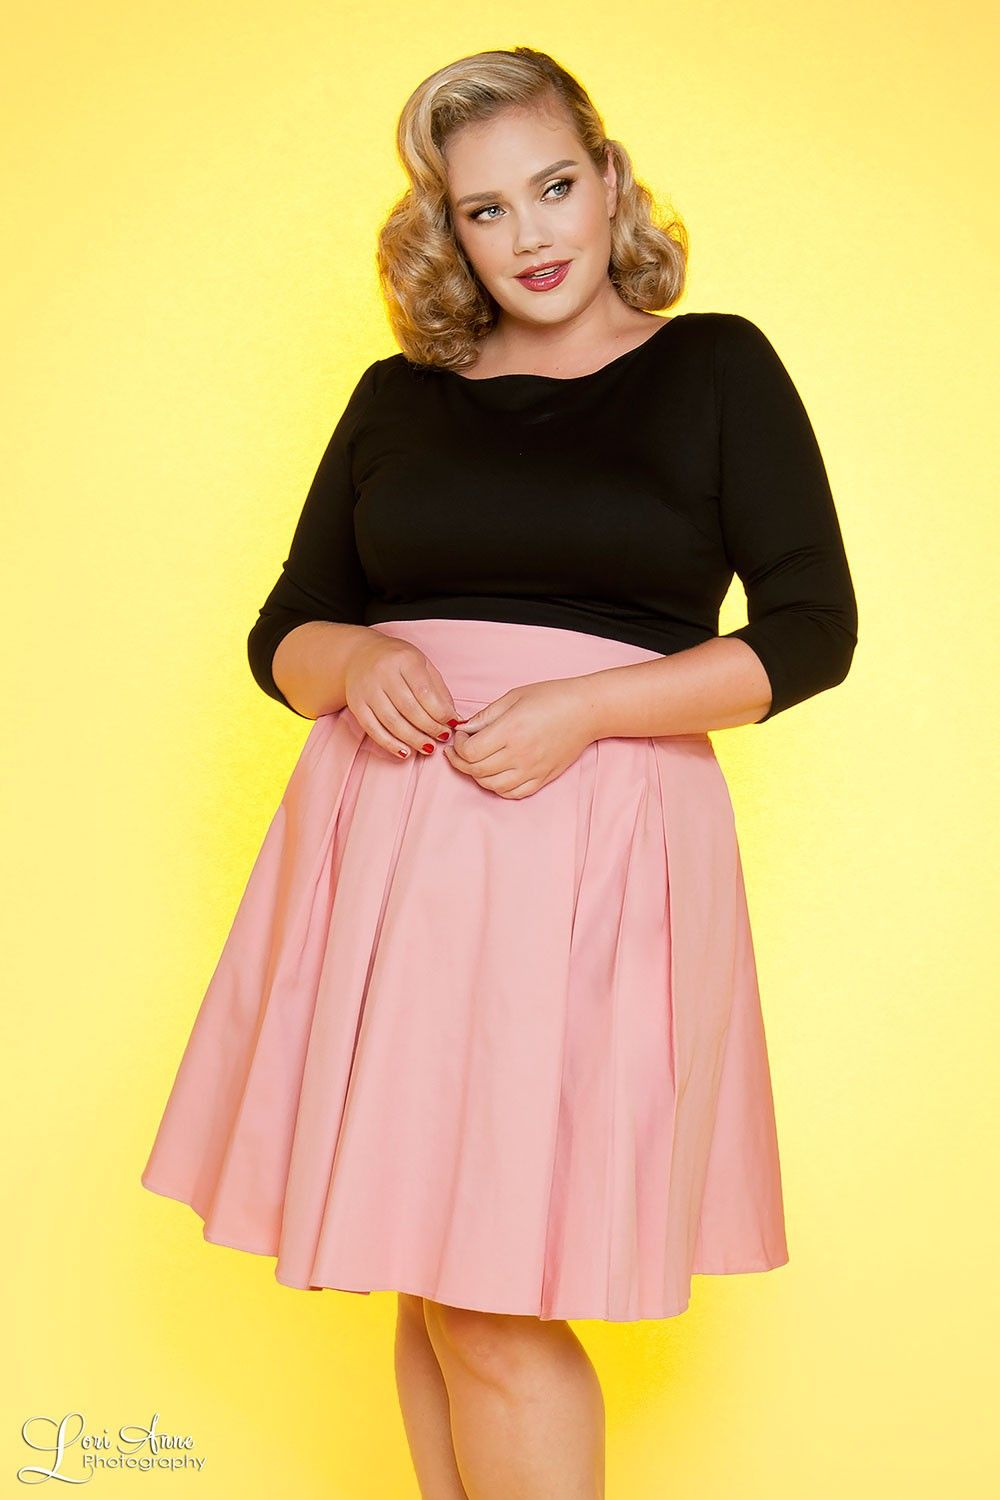 Little Jun Skirt in Pale Rose Pink - Plus Size | Skirts ...